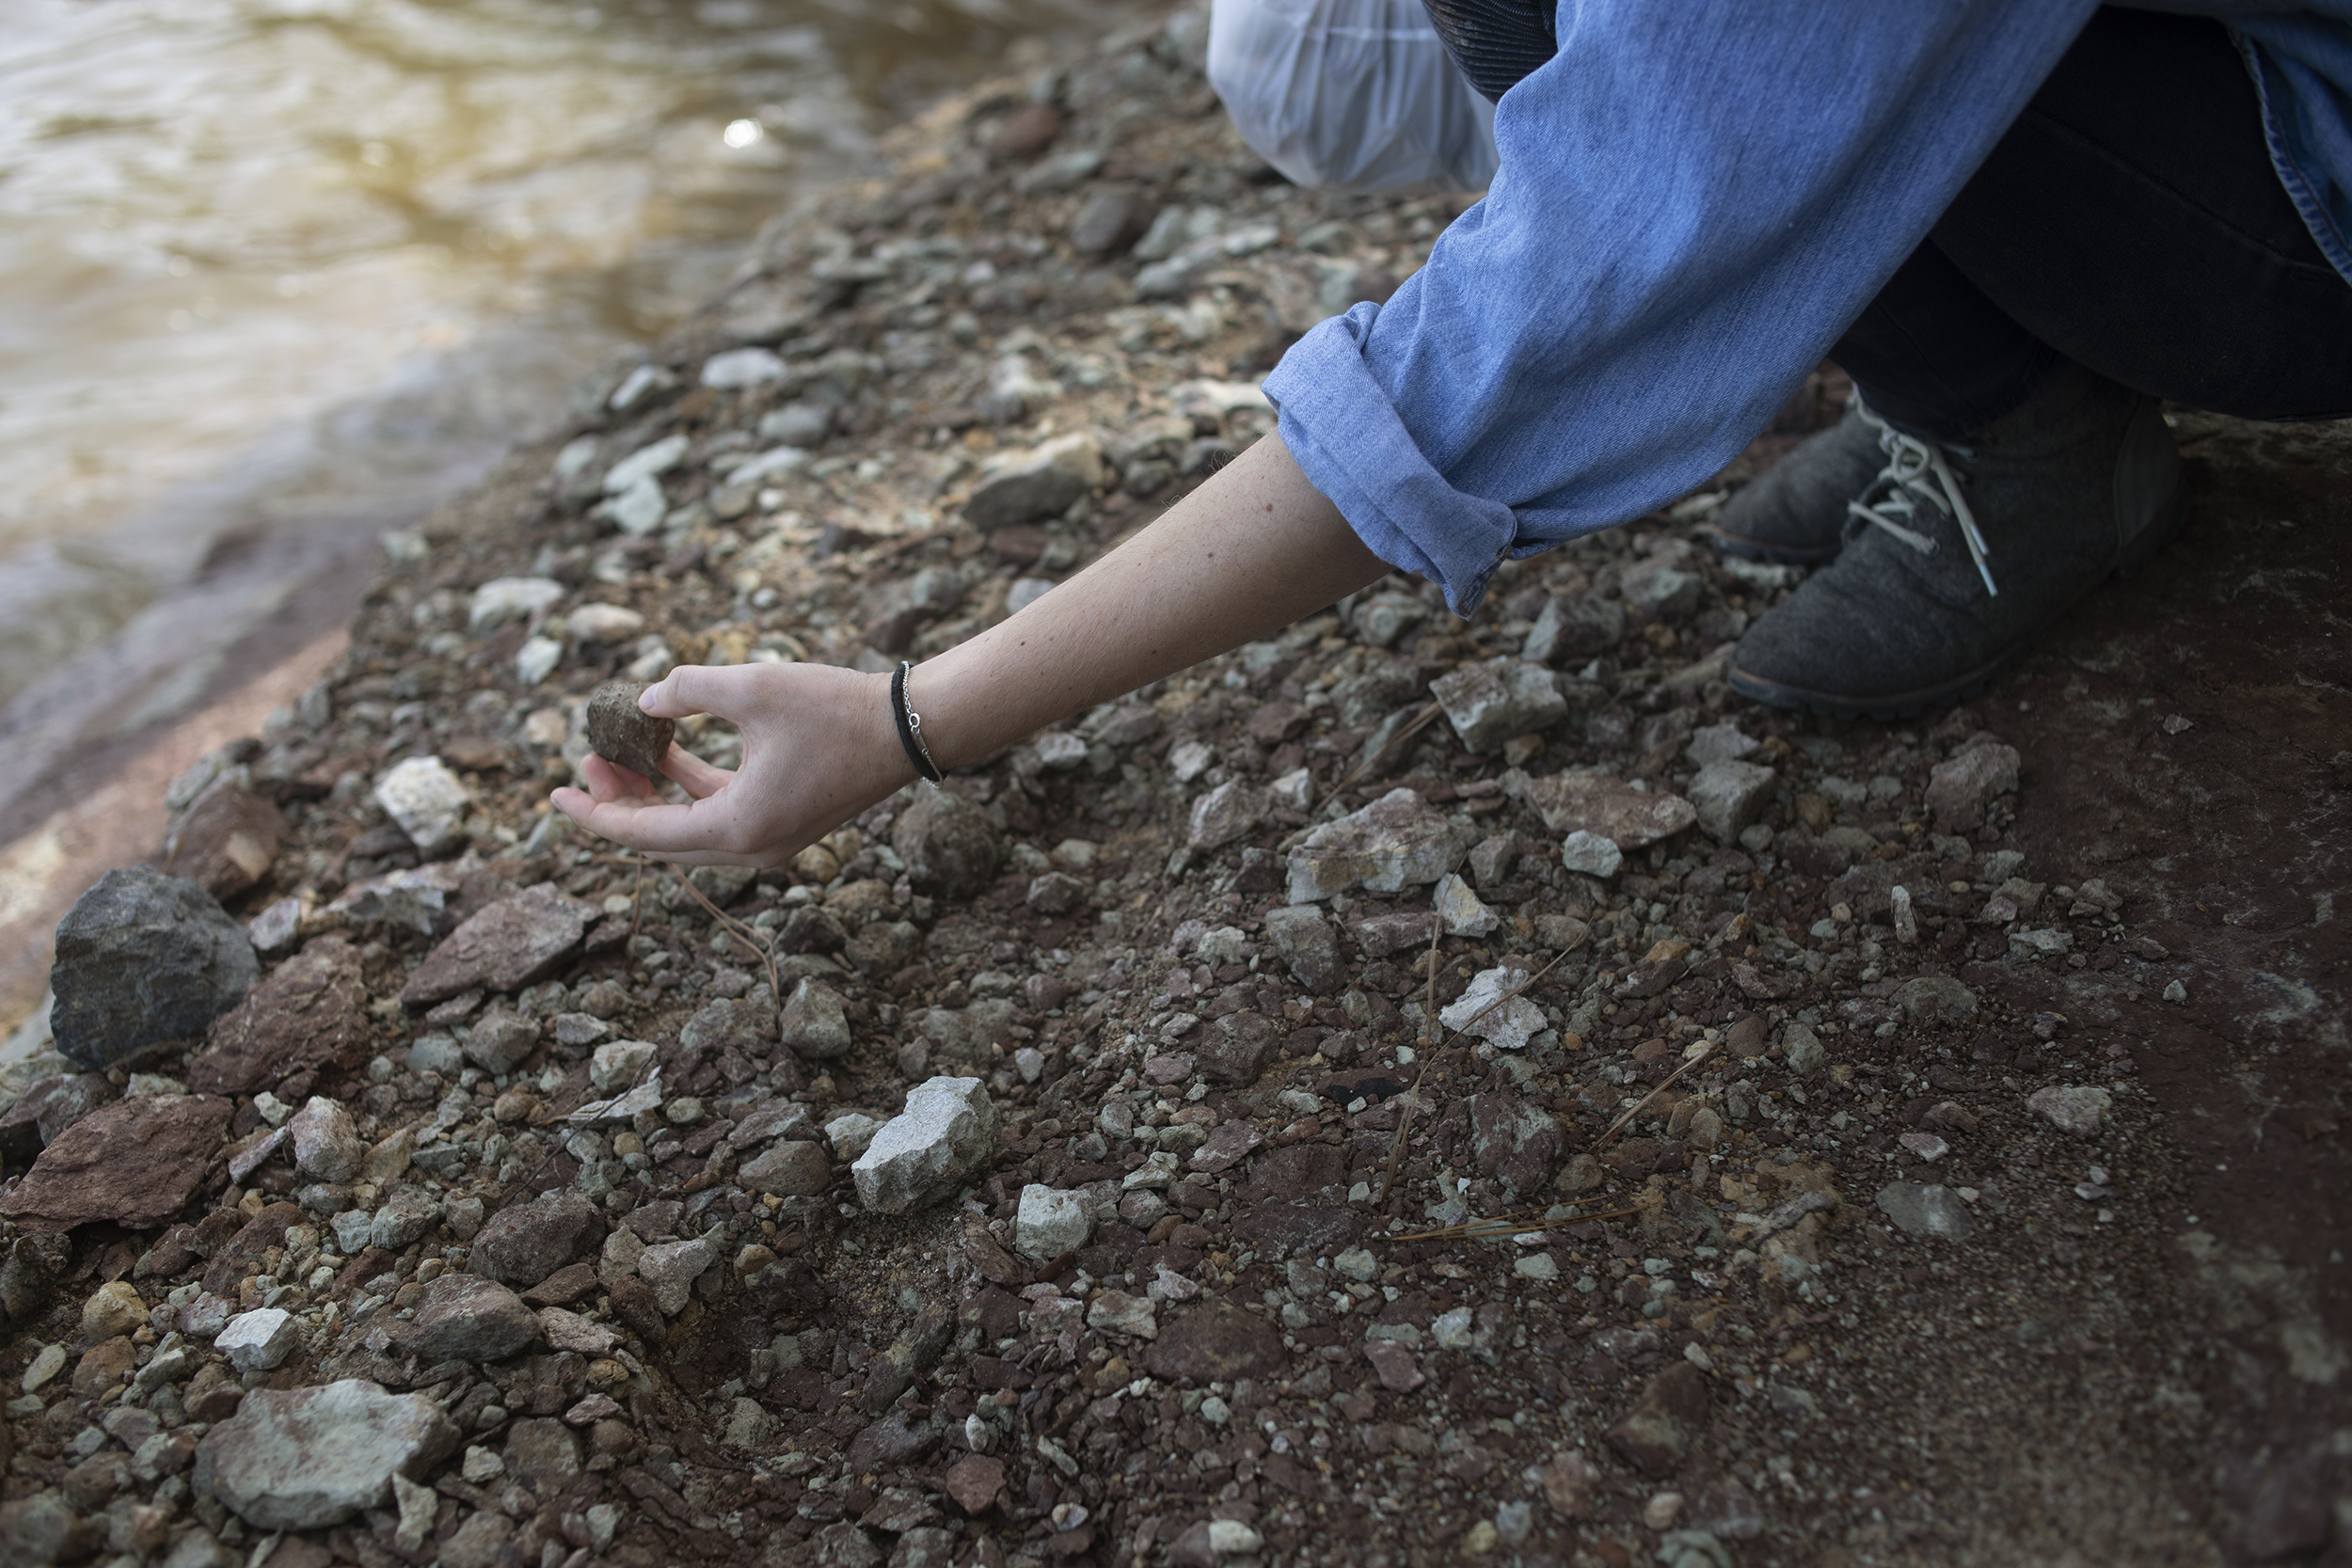 Detail shot of Ayla Gizlice's hand as she crouches and picks up a chunk of clay.